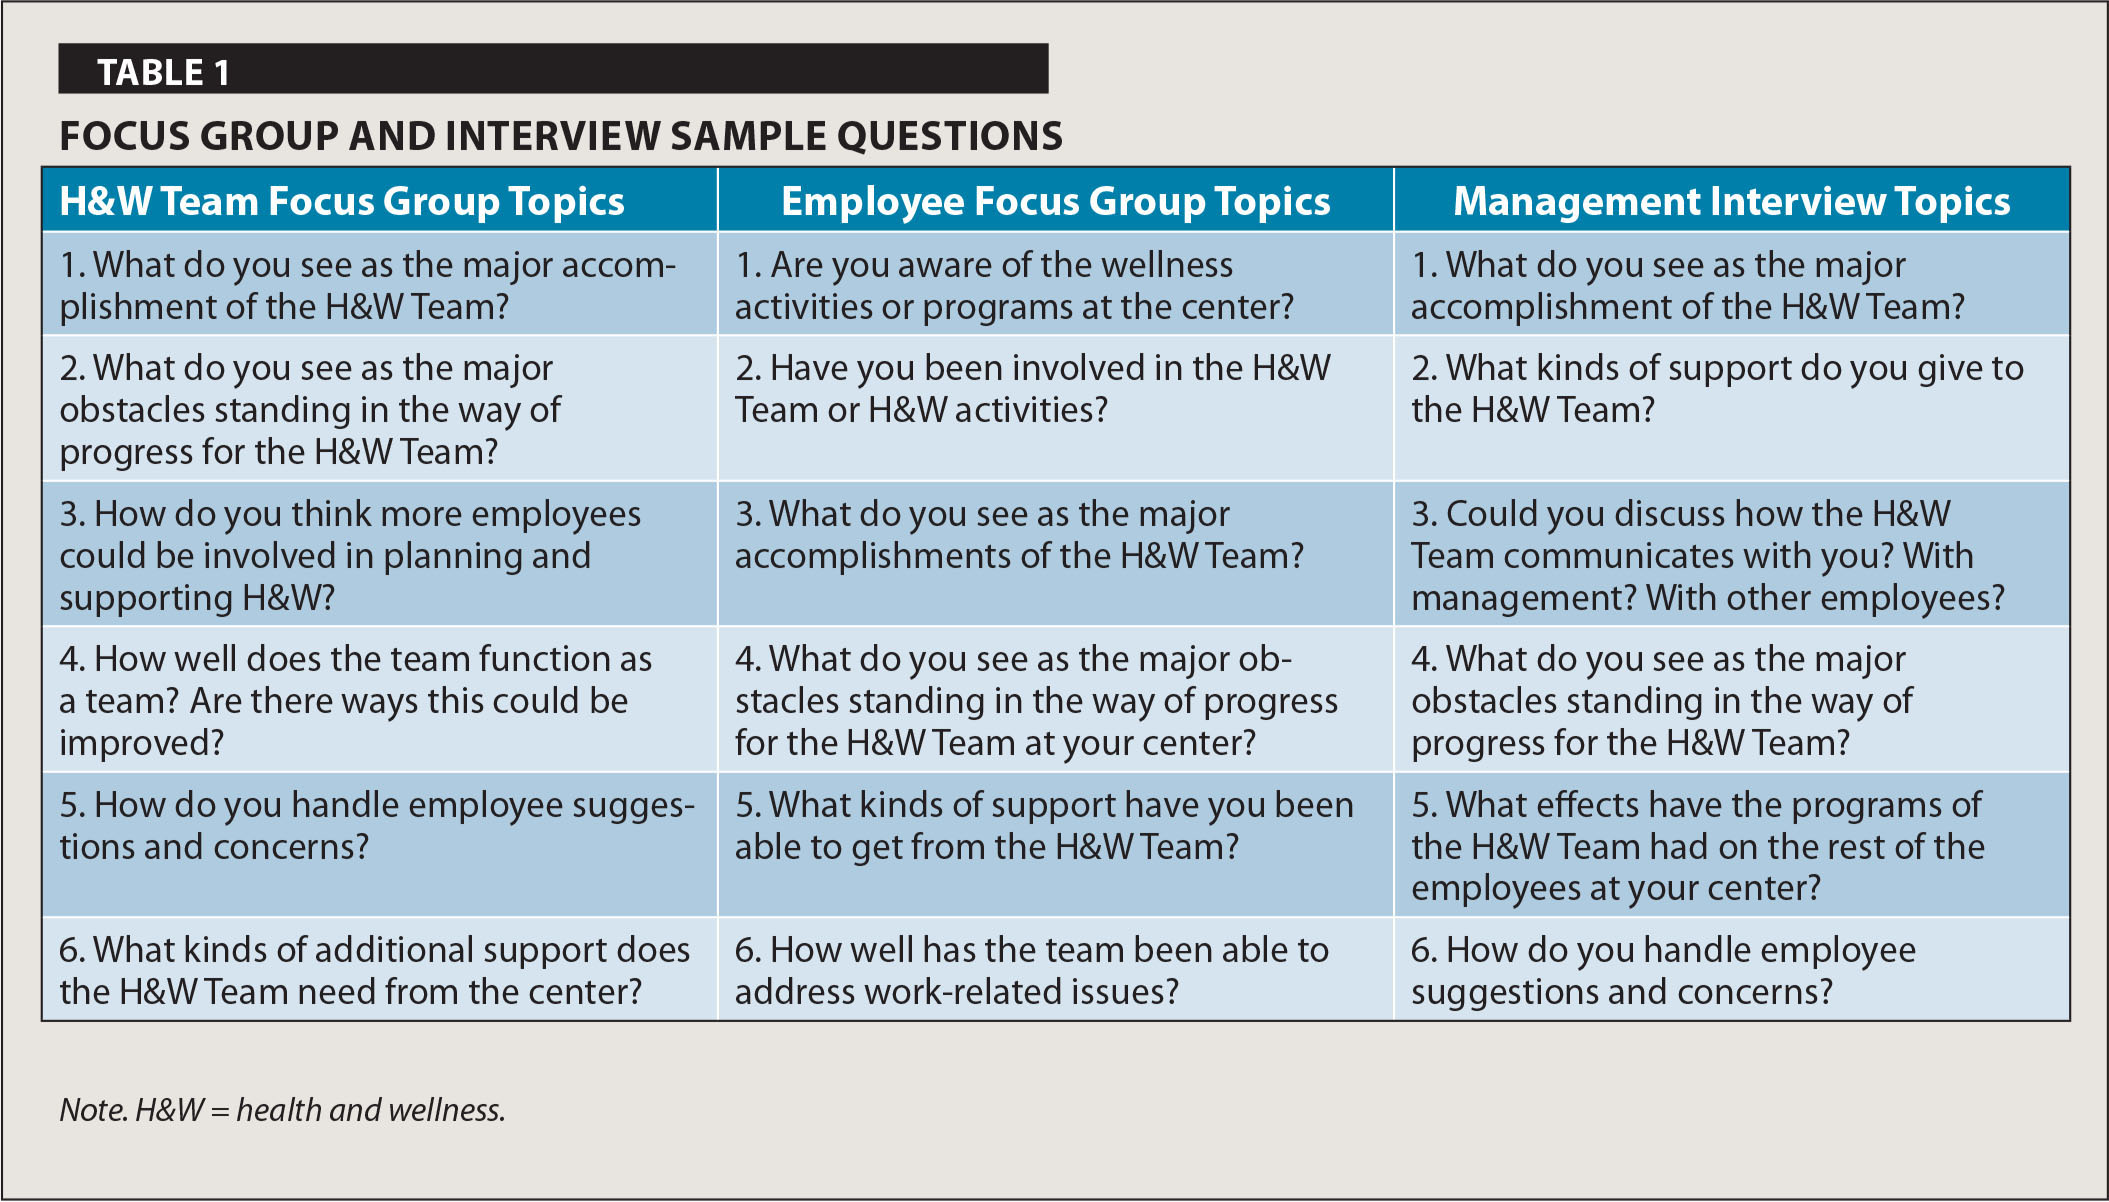 Focus Group and Interview Sample Questions